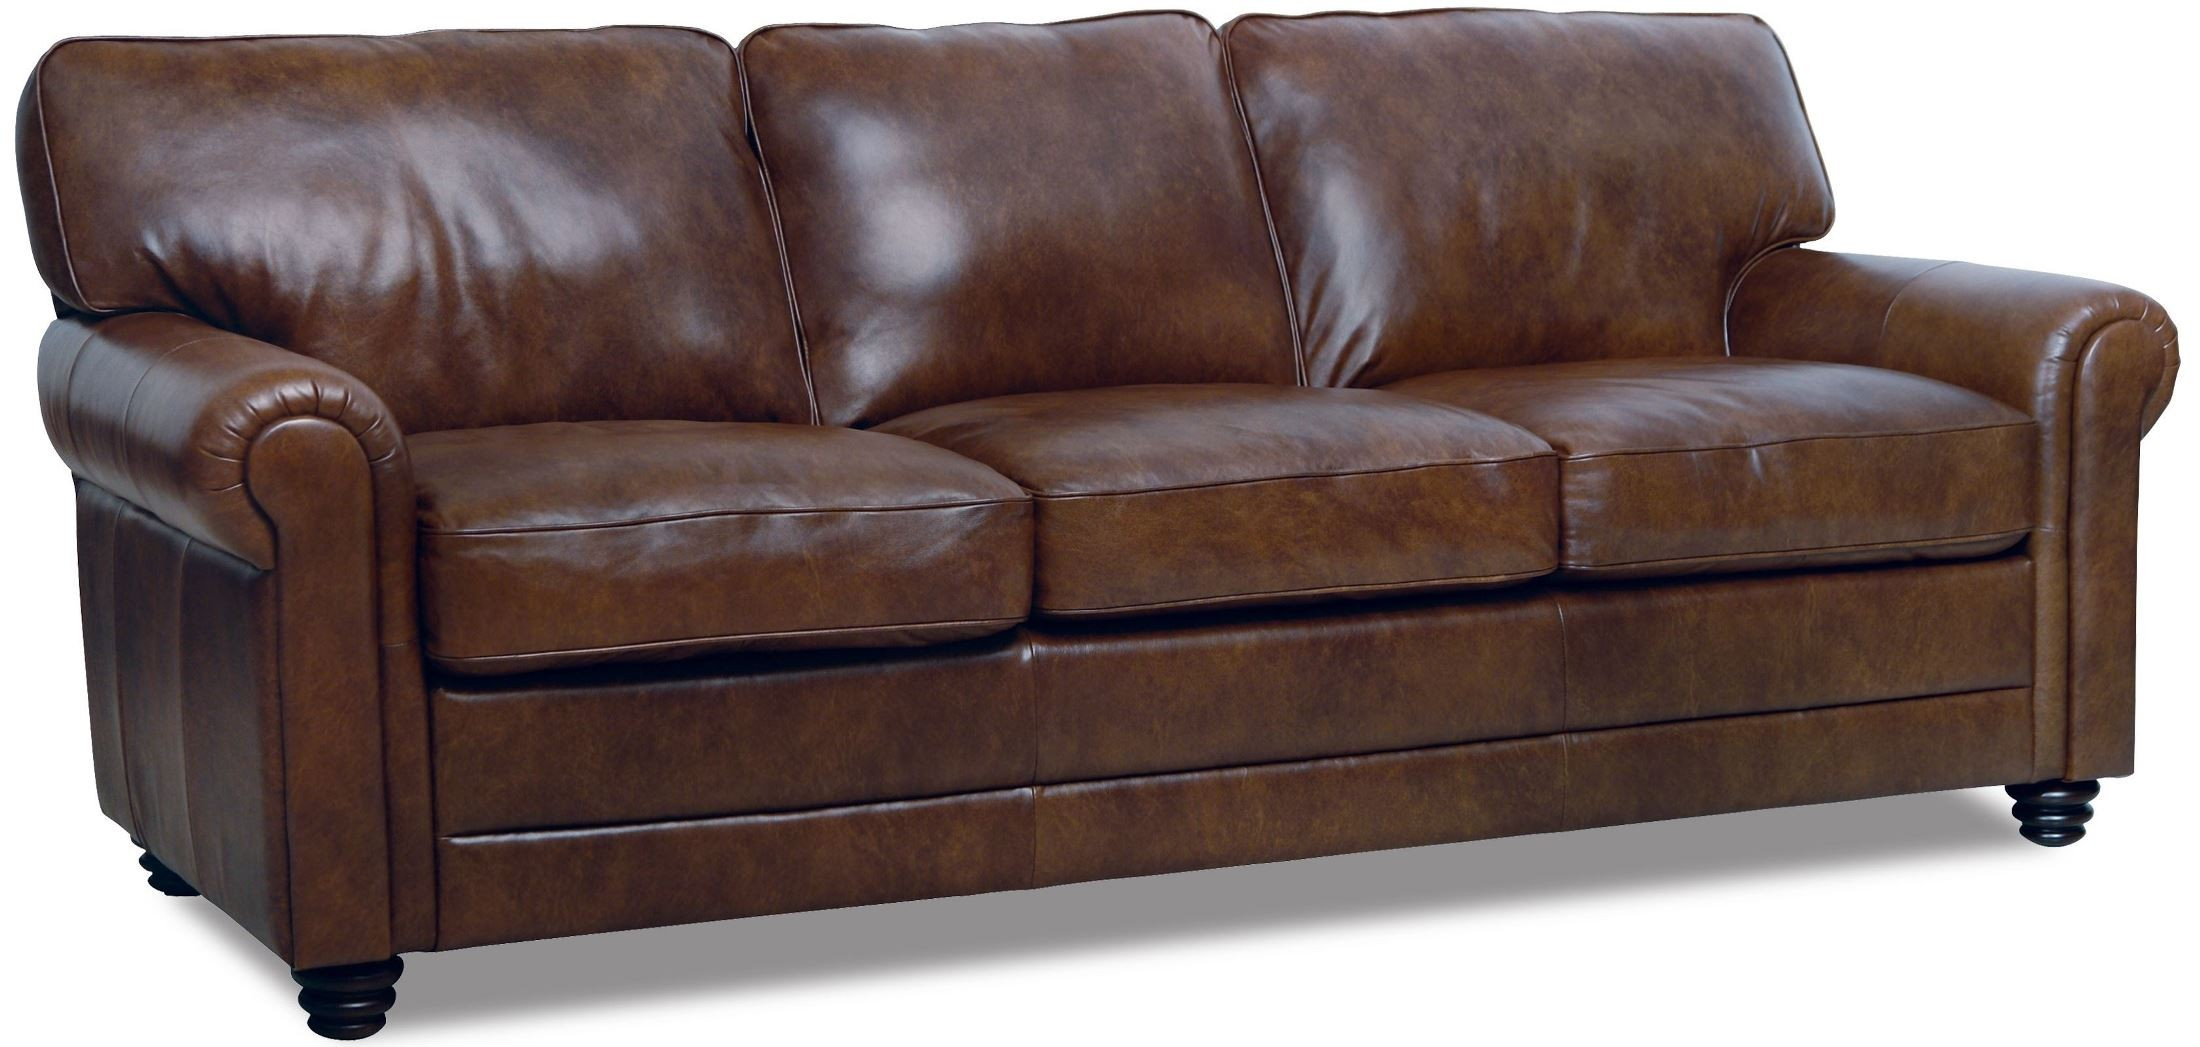 Andrew Italian Leather Living Room Set From Luke Leather (Andrew Intended For Andrew Leather Sofa Chairs (Image 5 of 25)